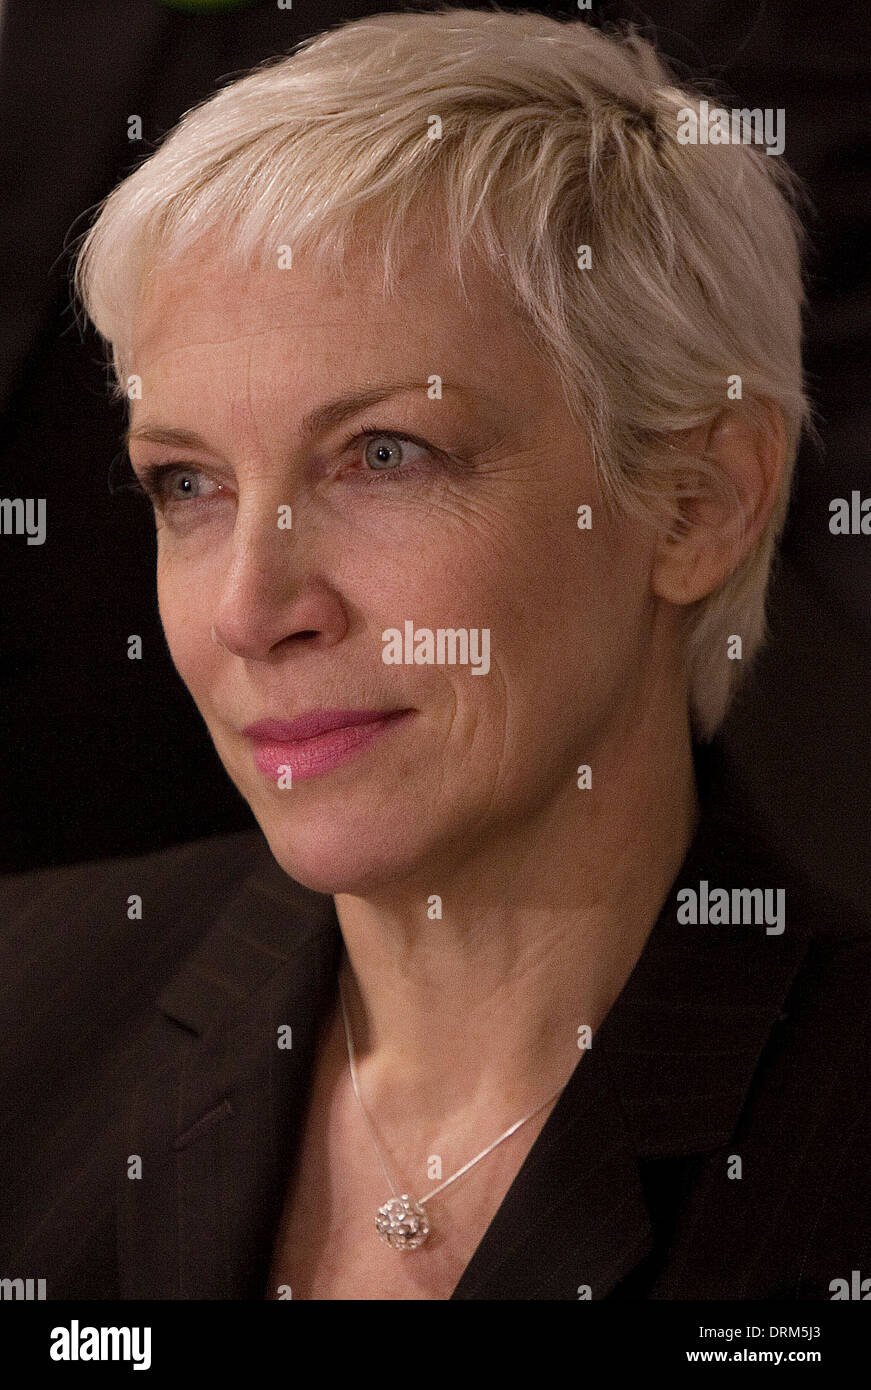 A tearful singer Annie Lennox at a unilateral Gaza press conference held at London Holiday Inn - Stock Image